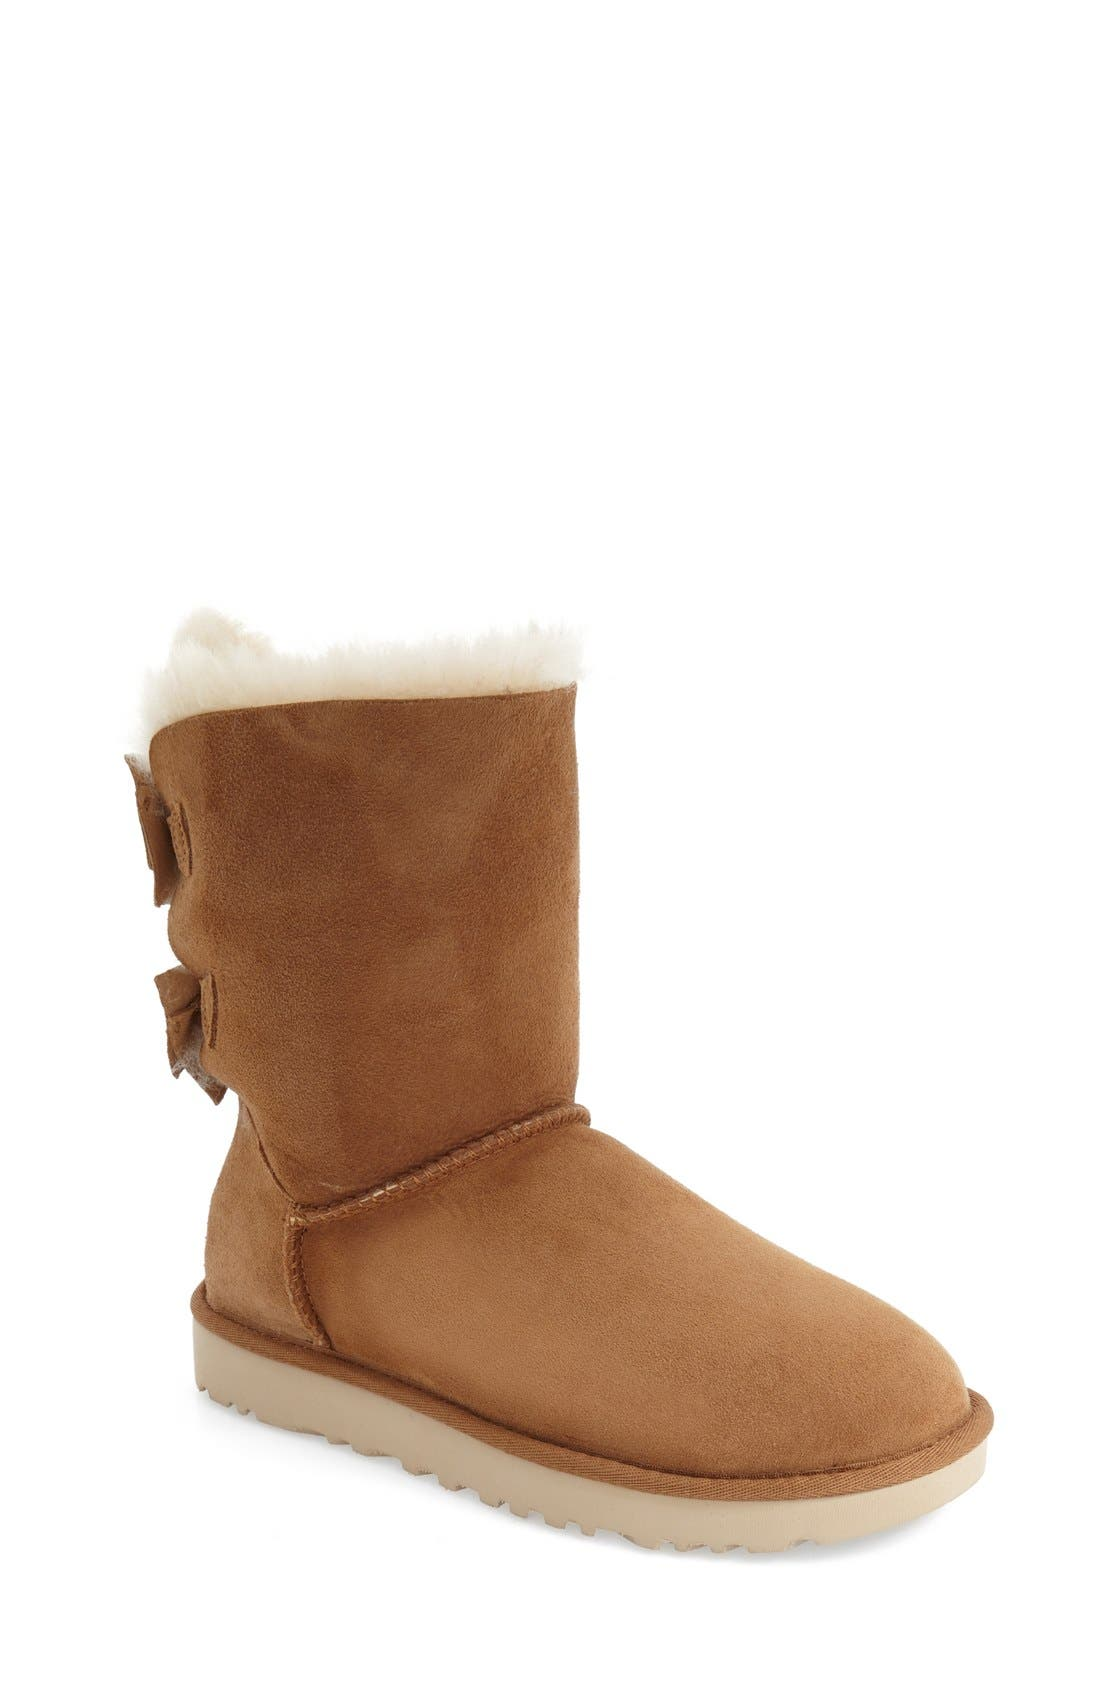 Main Image - UGG® Meilani Bow Boot (Women)